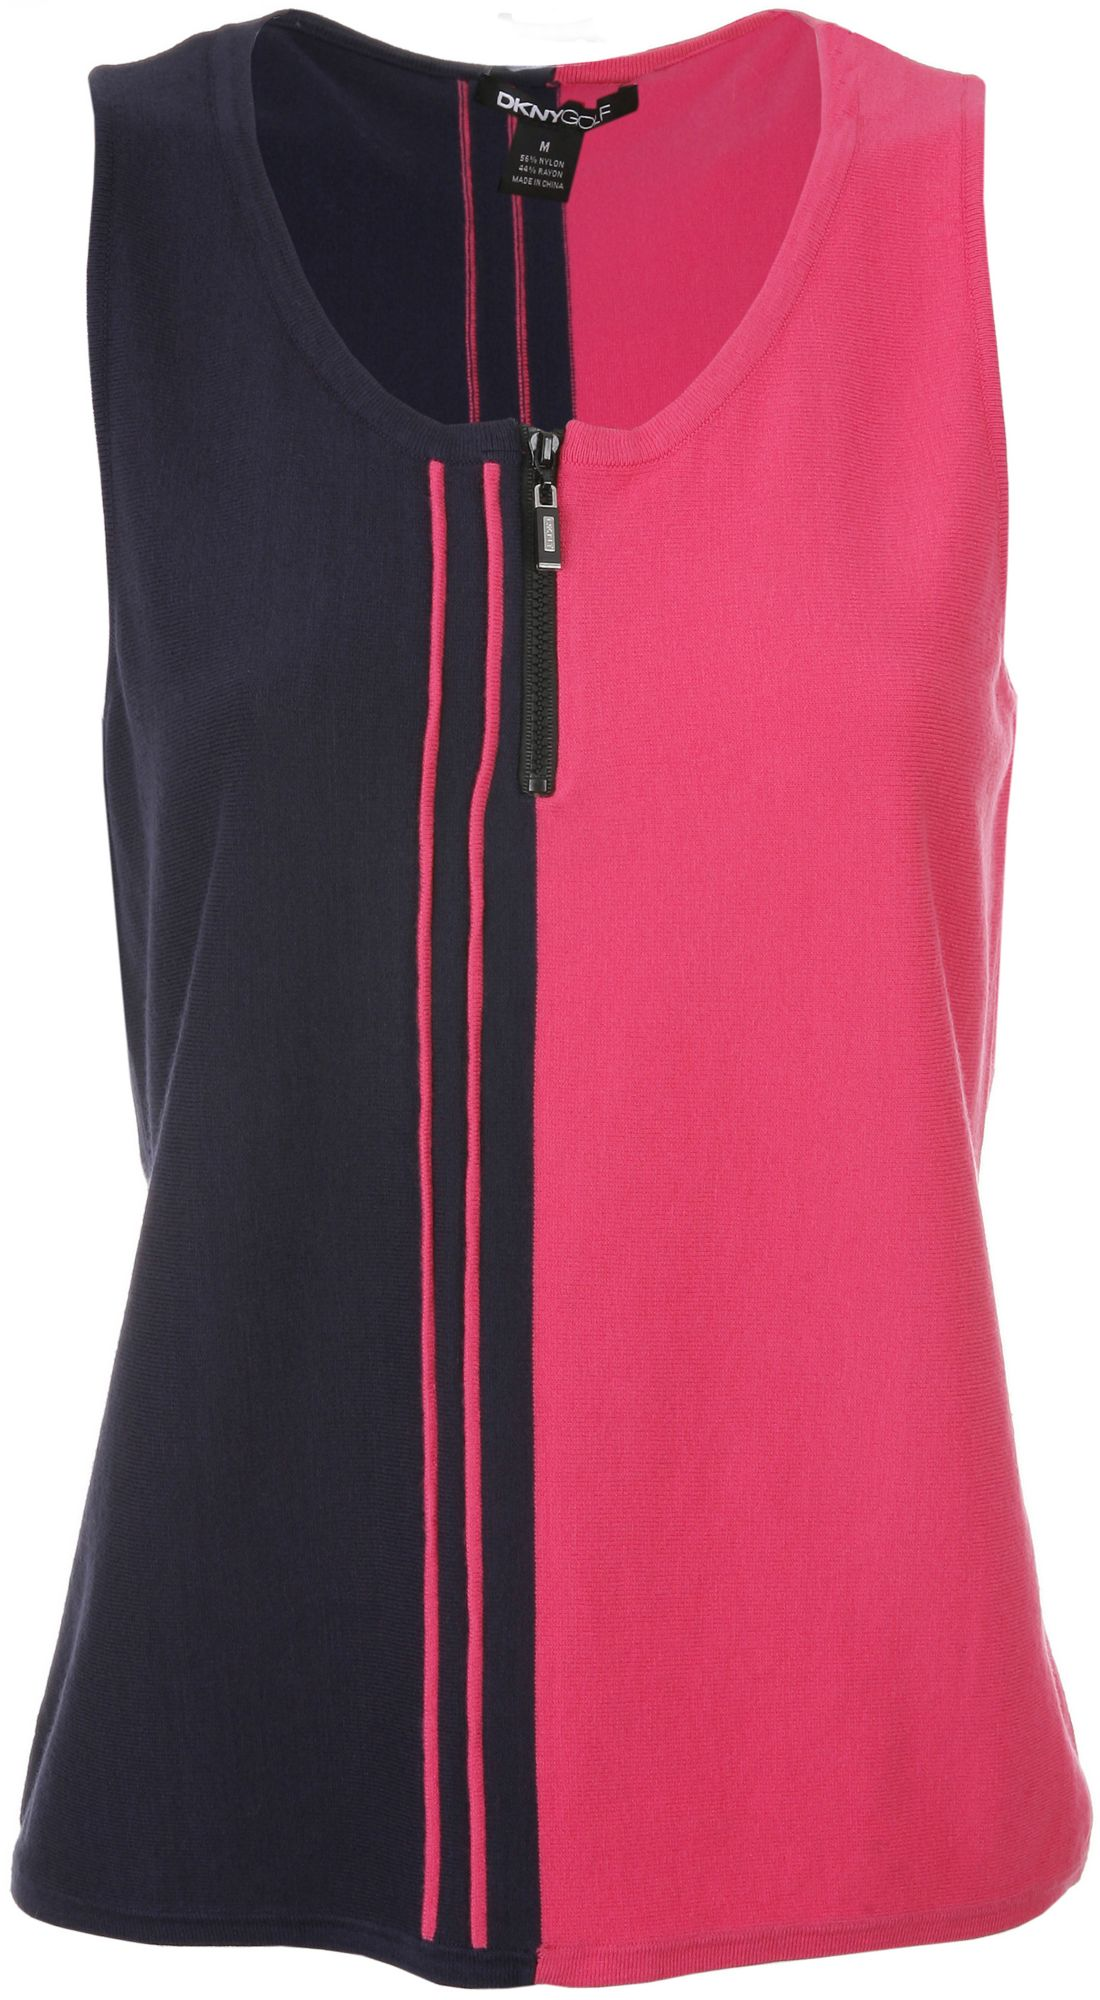 DKNY Women's Vivid and Twilight Vertical Stripe Sleeveless Sweater